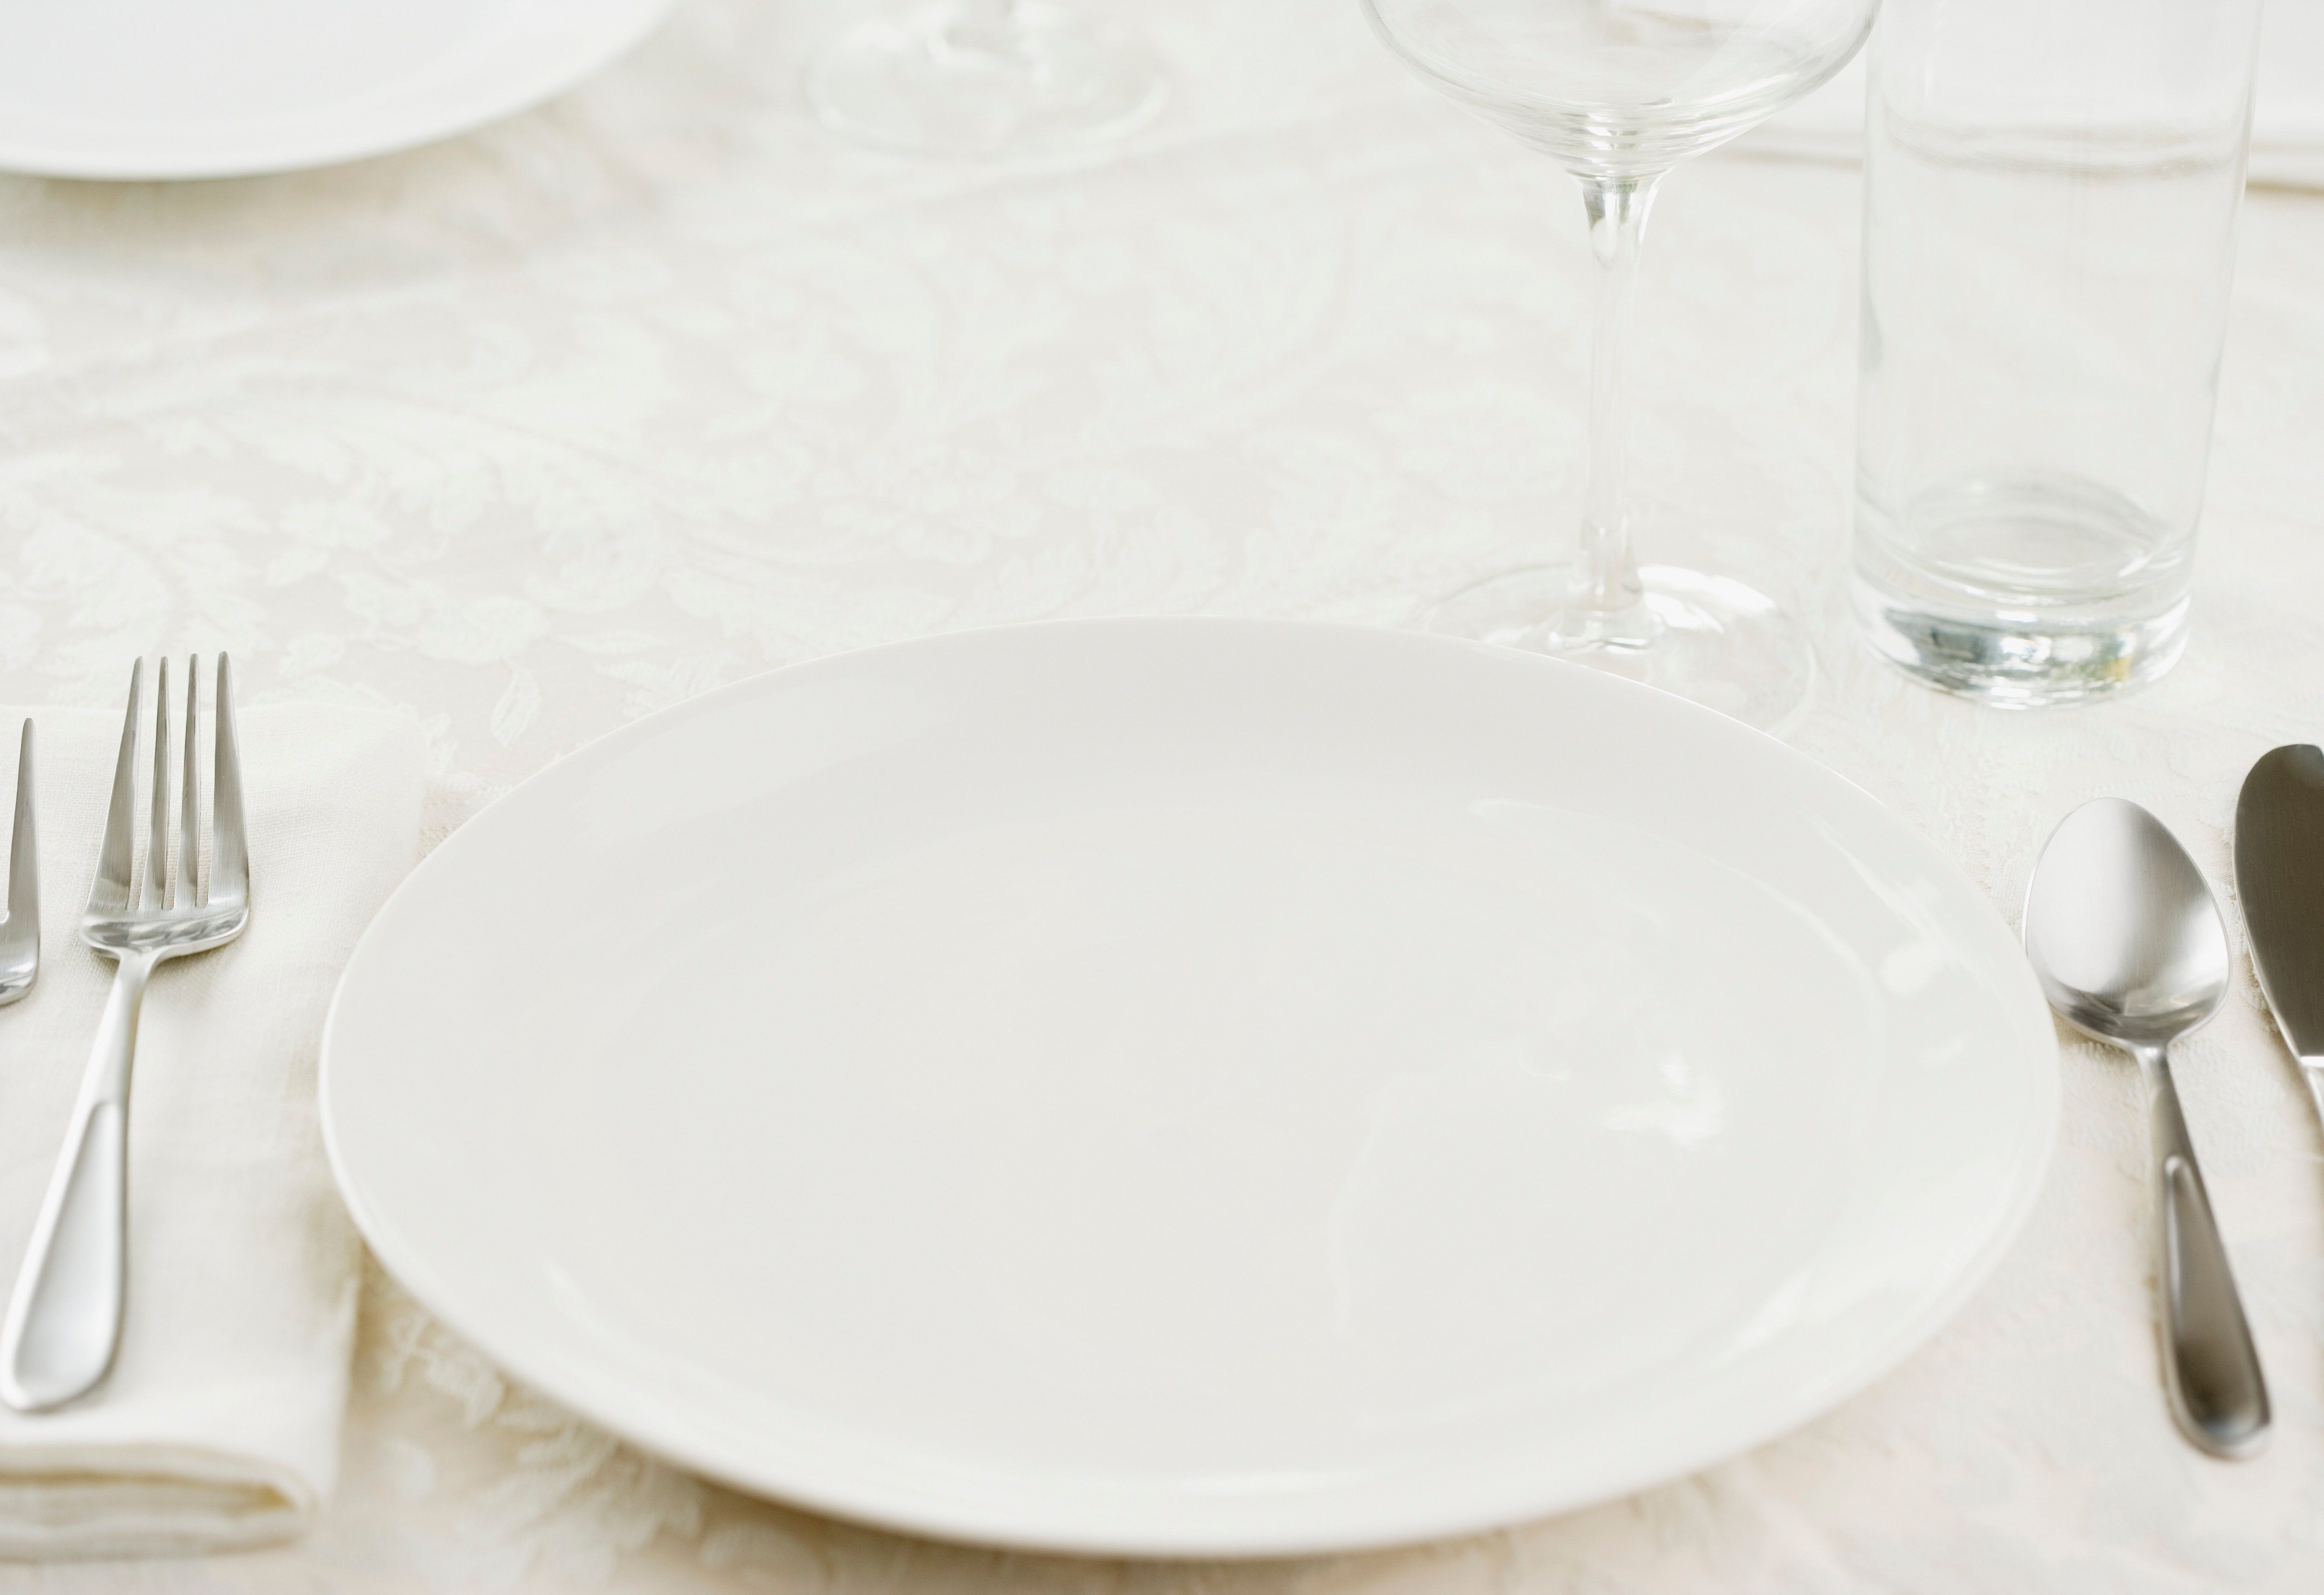 Close-up of a table setting